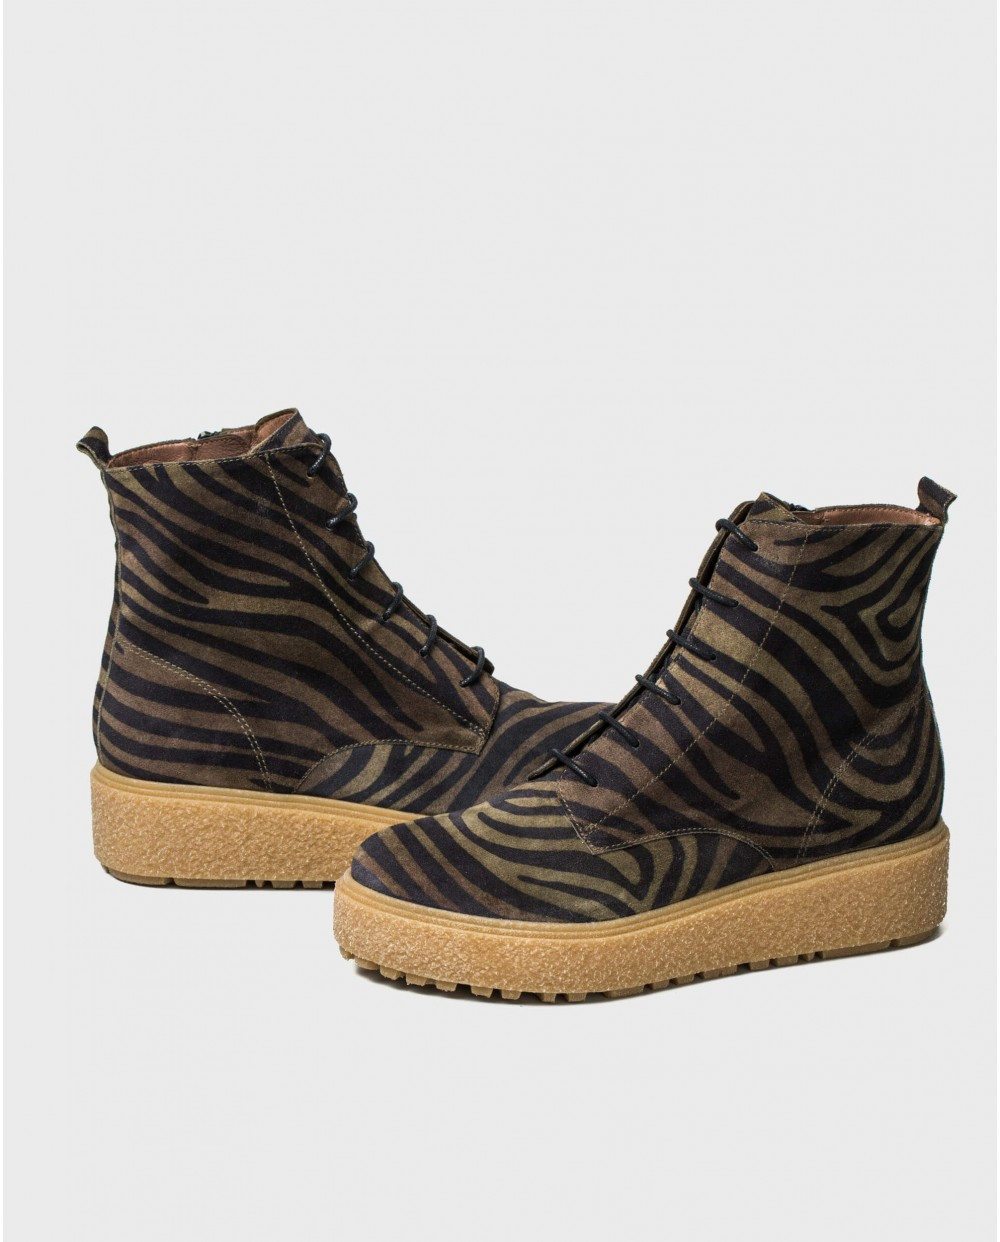 Wonders-Ankle Boots-Zebra print ankle boot